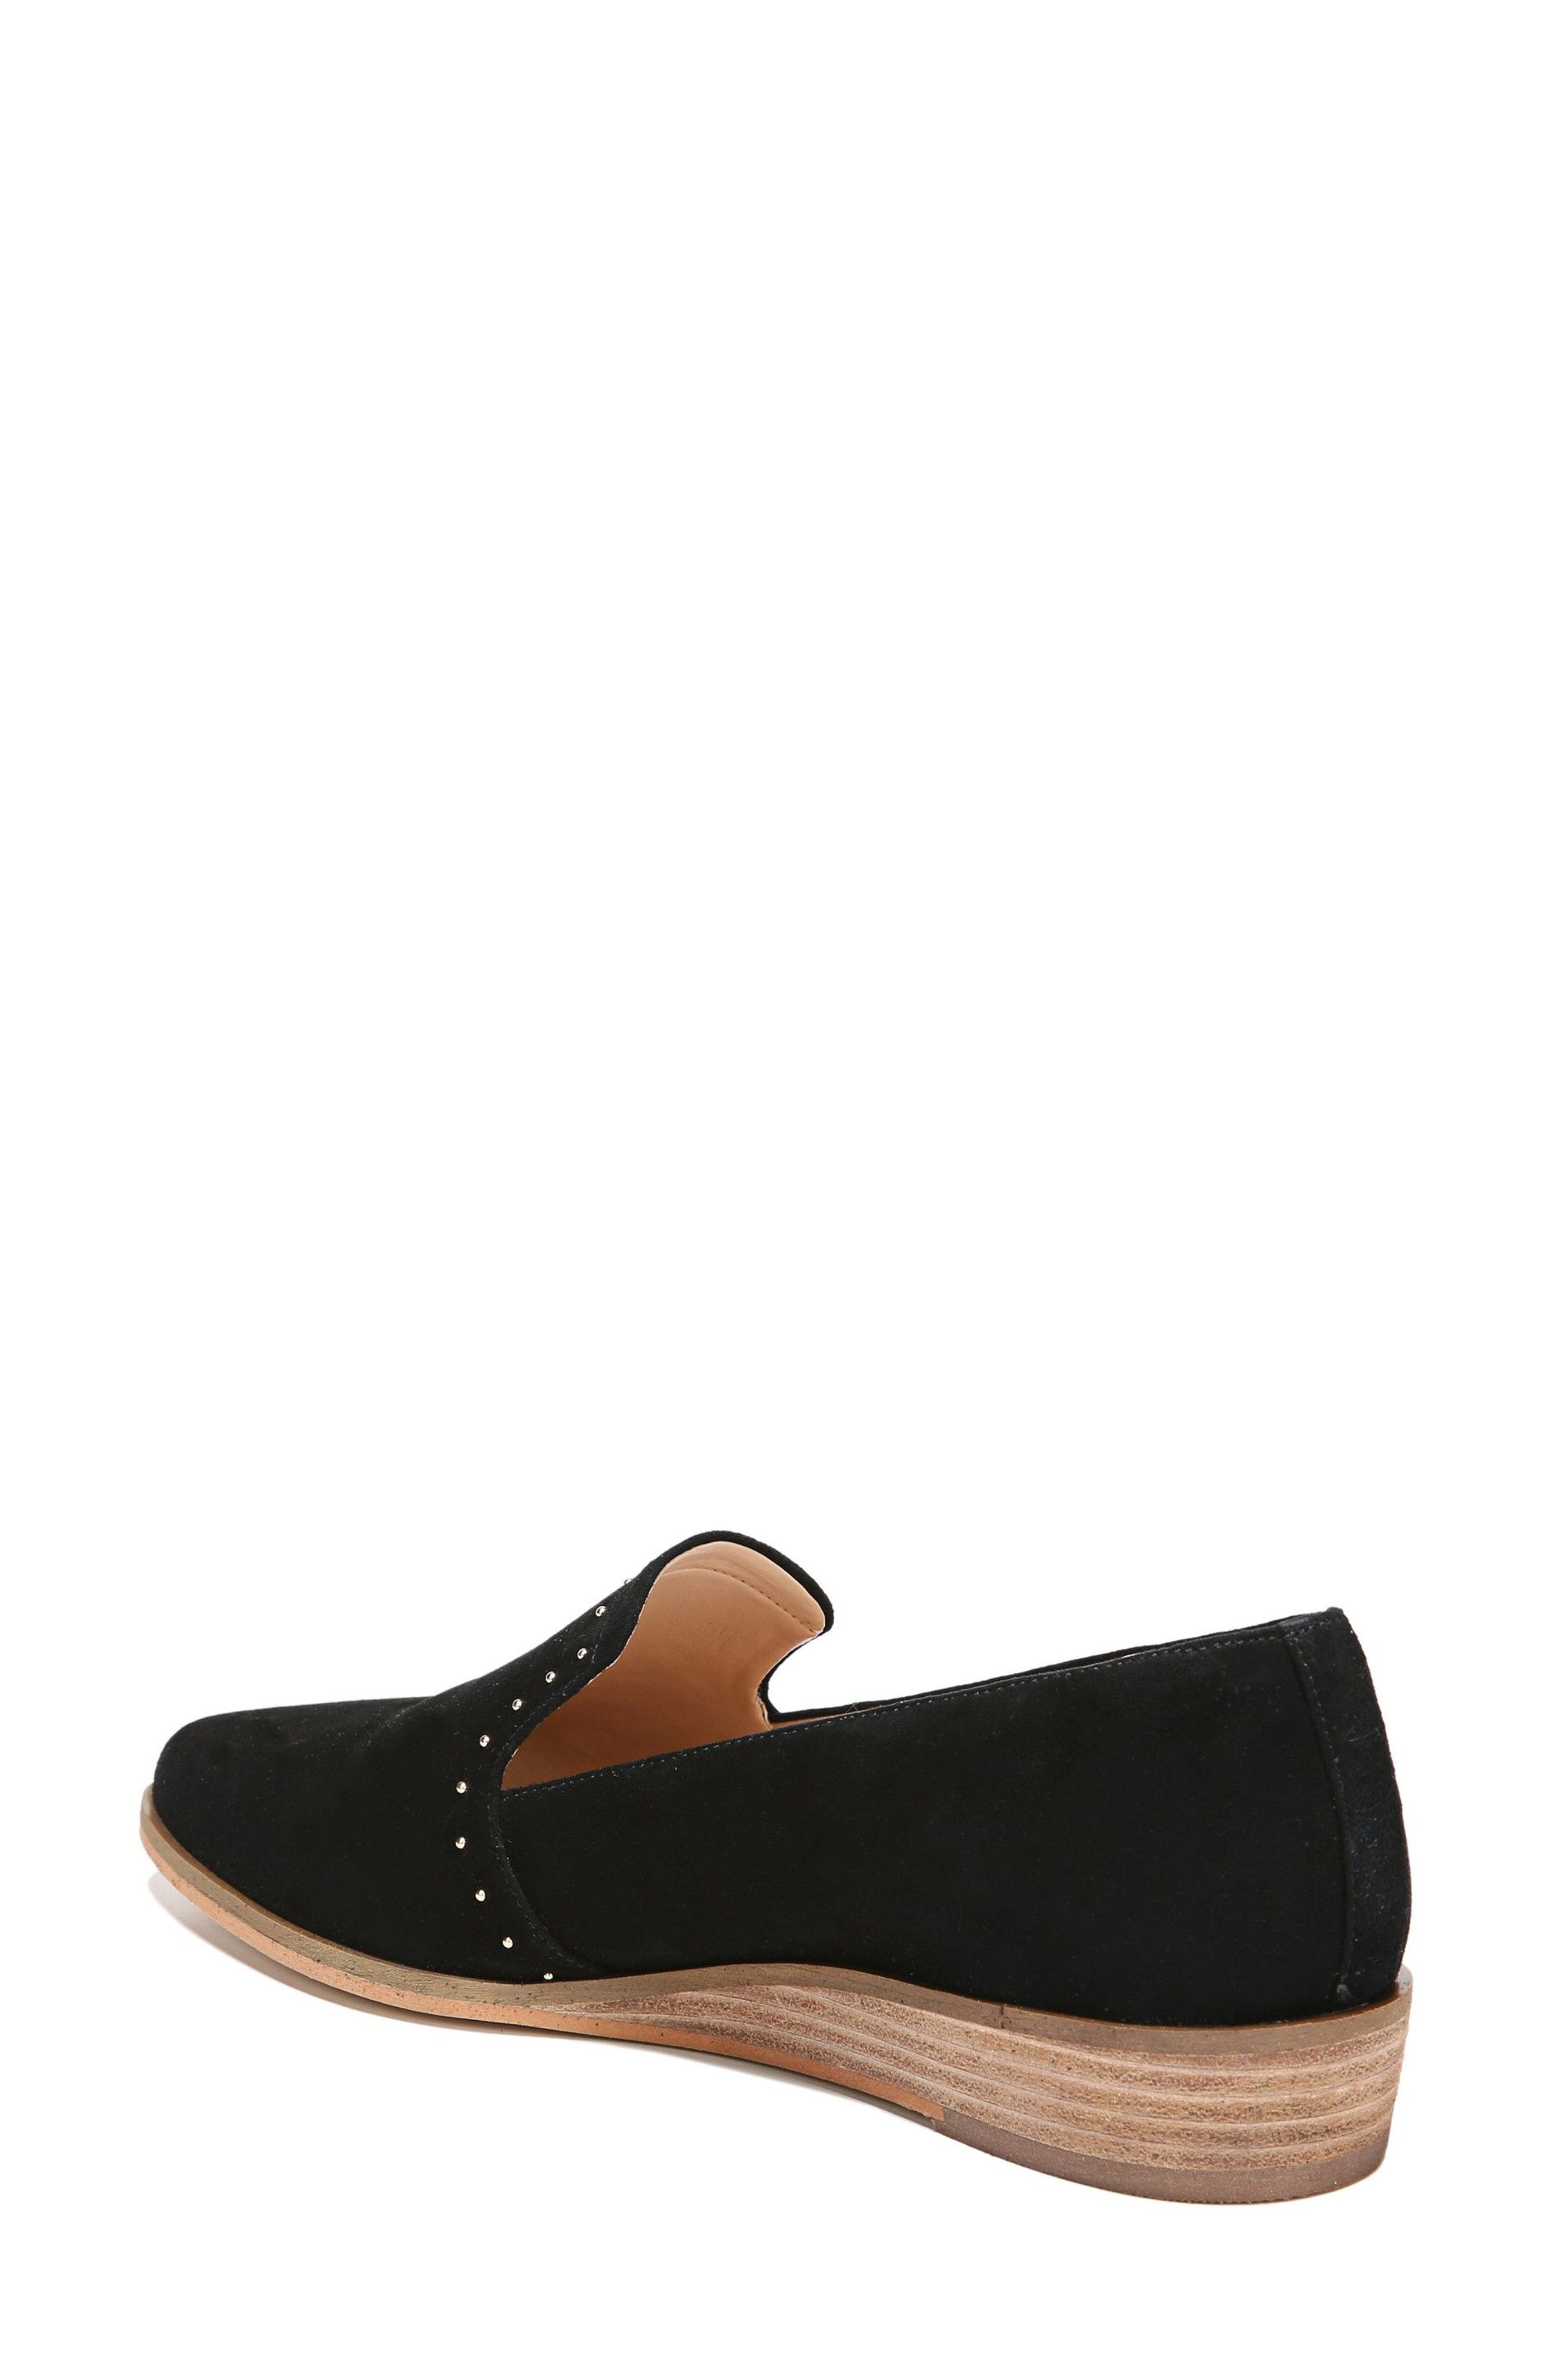 Keane Loafer Wedge,                             Alternate thumbnail 2, color,                             Black Suede